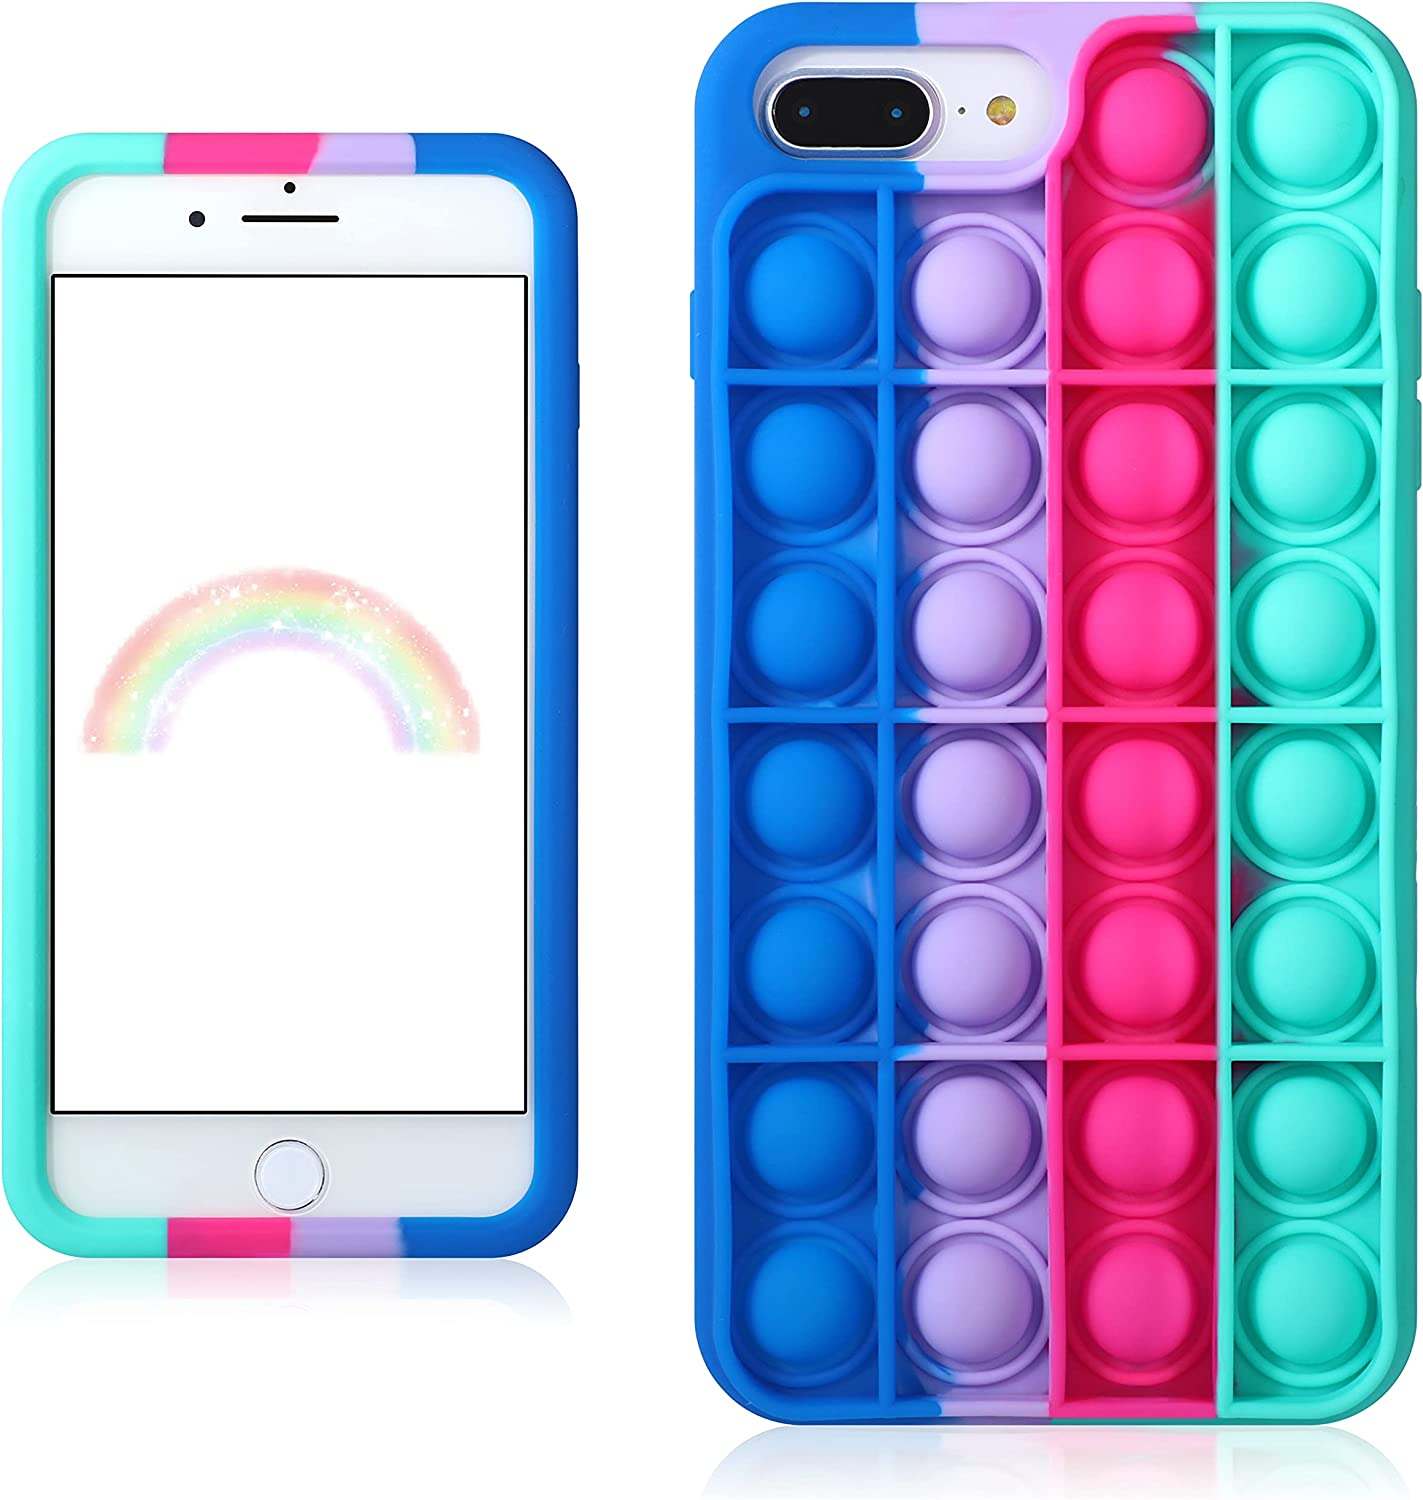 Trendy Fun for iPhone 6/6S/7/8 Plus Case,Silicone Aesthetic Cartoon Funny Cute Aesthetic Stylish Unique Designer Fun Cover Cases for Boys Girls Women Men Blue Rose Pop-for iPhone 6/6S/7/8 Plus 5.5